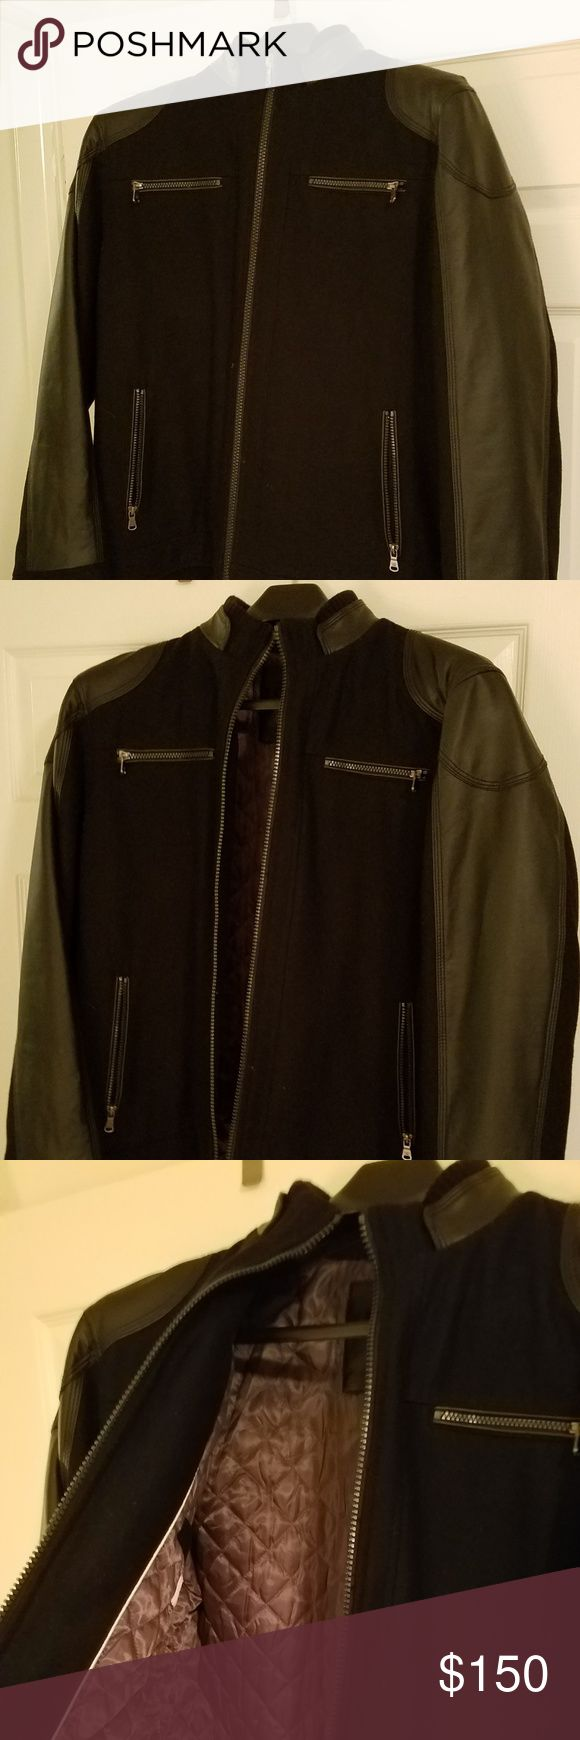 Calvin Klein Men's Leather Jacket This Calvin Klein jacket is essentially brand new! Was worn once or twice and is in VERY good condition. The jacket is very warm and stylish.  Has two zippers near the chest, and two on the sides. Size: Large.  If you'd like more or different pictures, please let me know and I'd be happy to work something out! :) Calvin Klein Jackets & Coats Bomber & Varsity